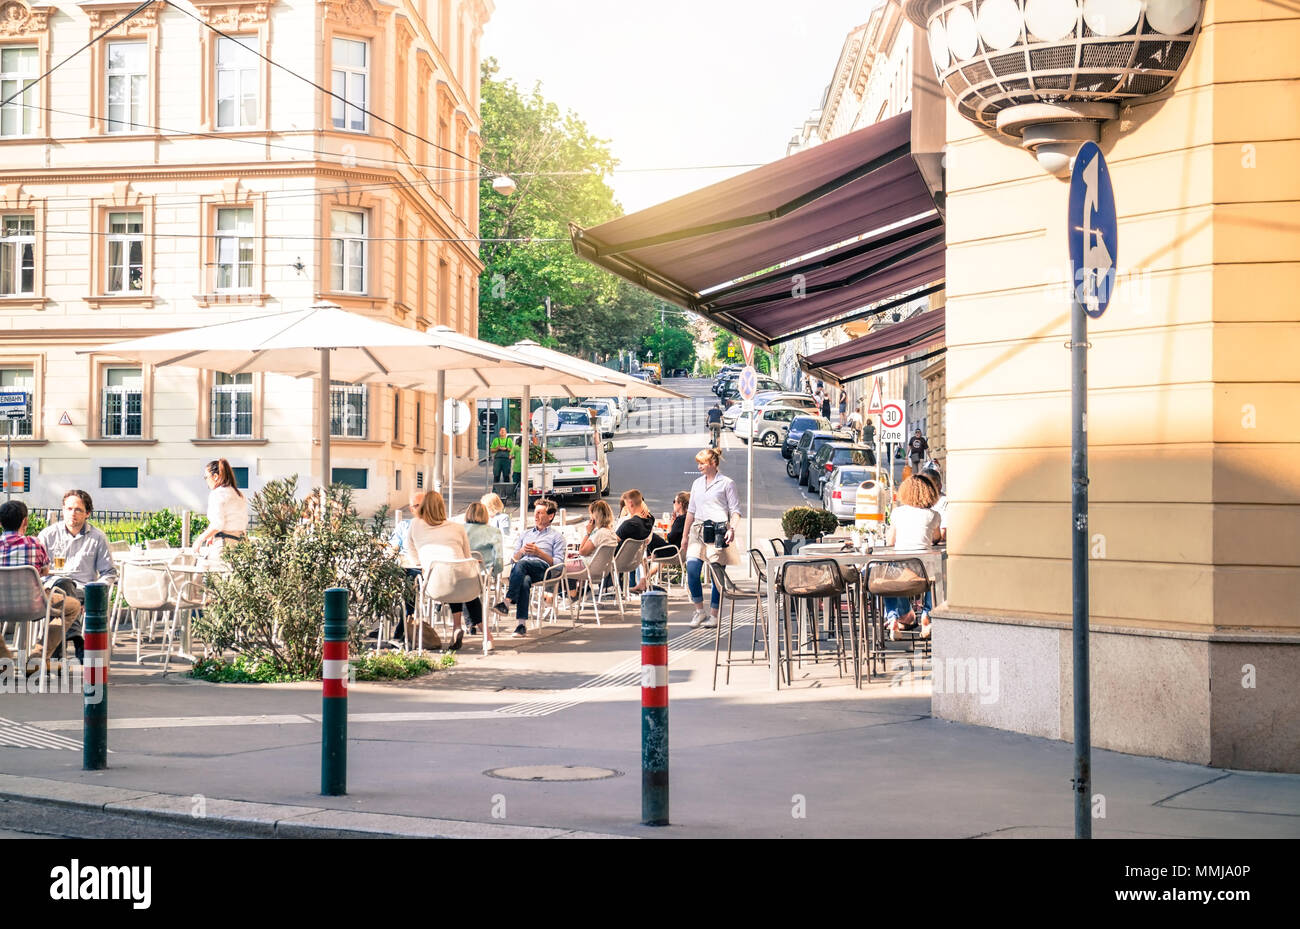 Vienna Austria May 3. 2018, European street coffeehouse, people sitting outside enjoying sunny weather - Stock Image